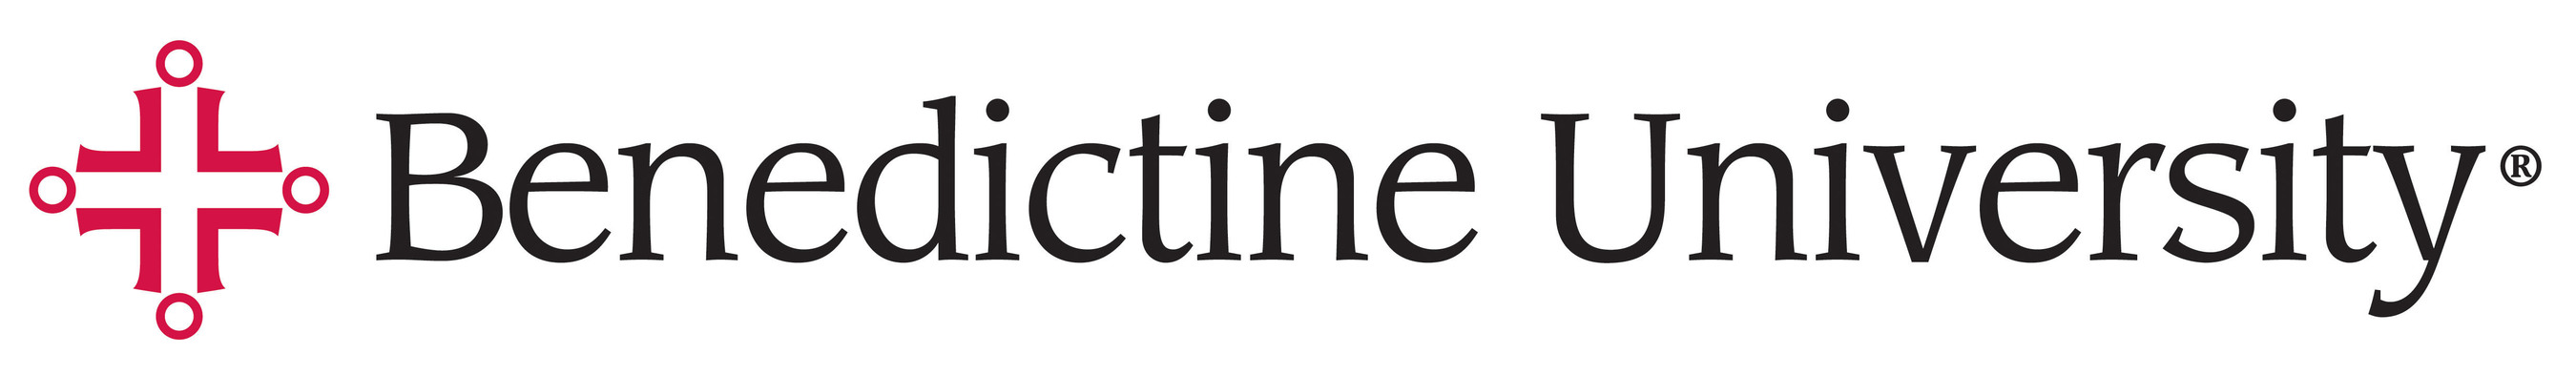 Benedictine University Logo.